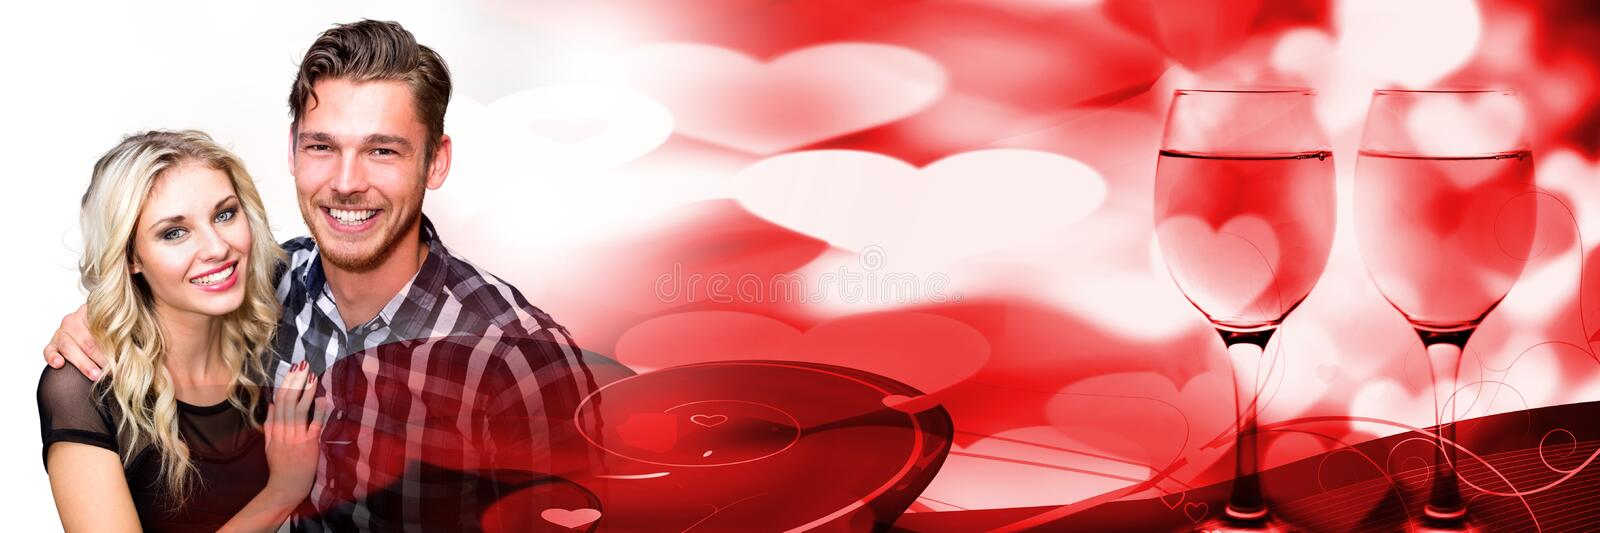 Couple with valentine's love transition hearts royalty free stock photo